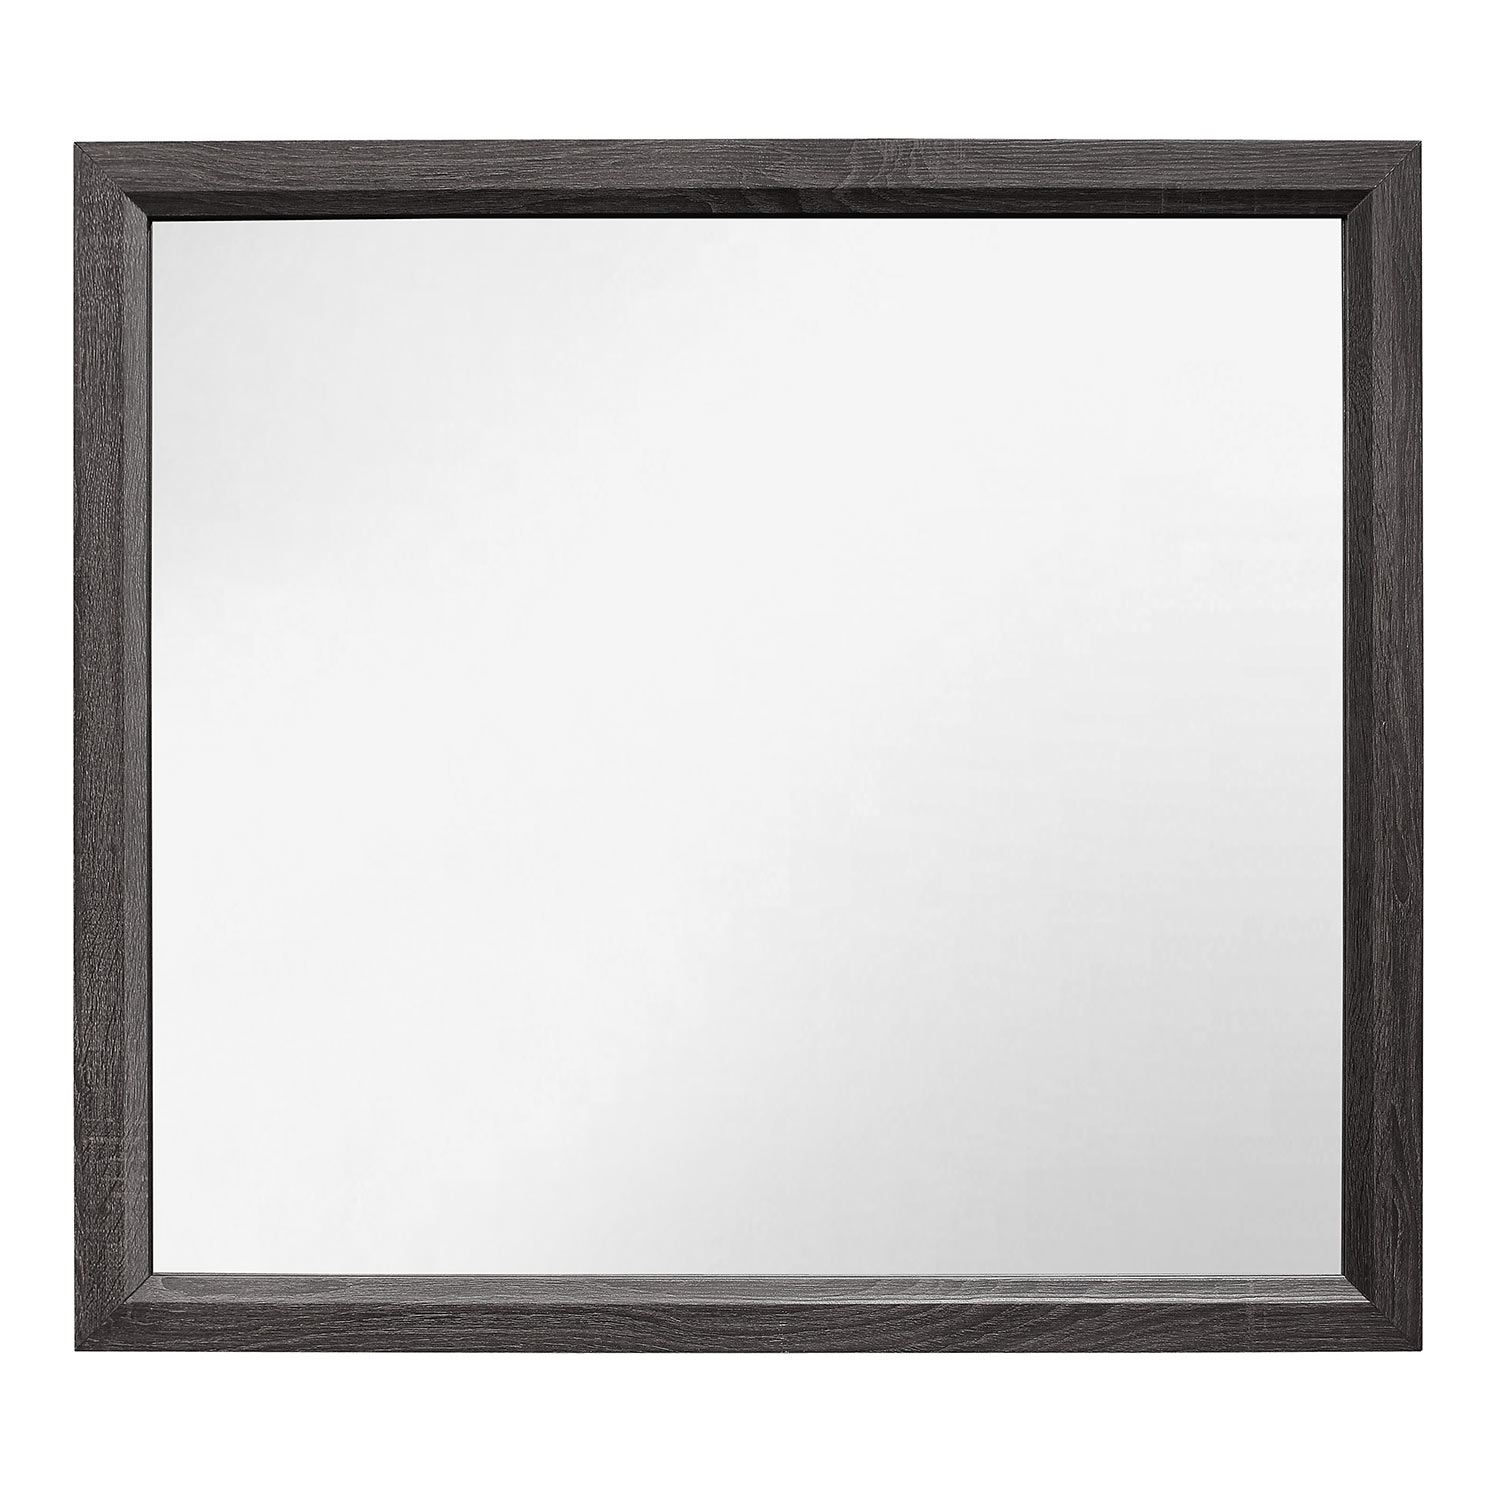 Homelegance Davi Mirror - Gray